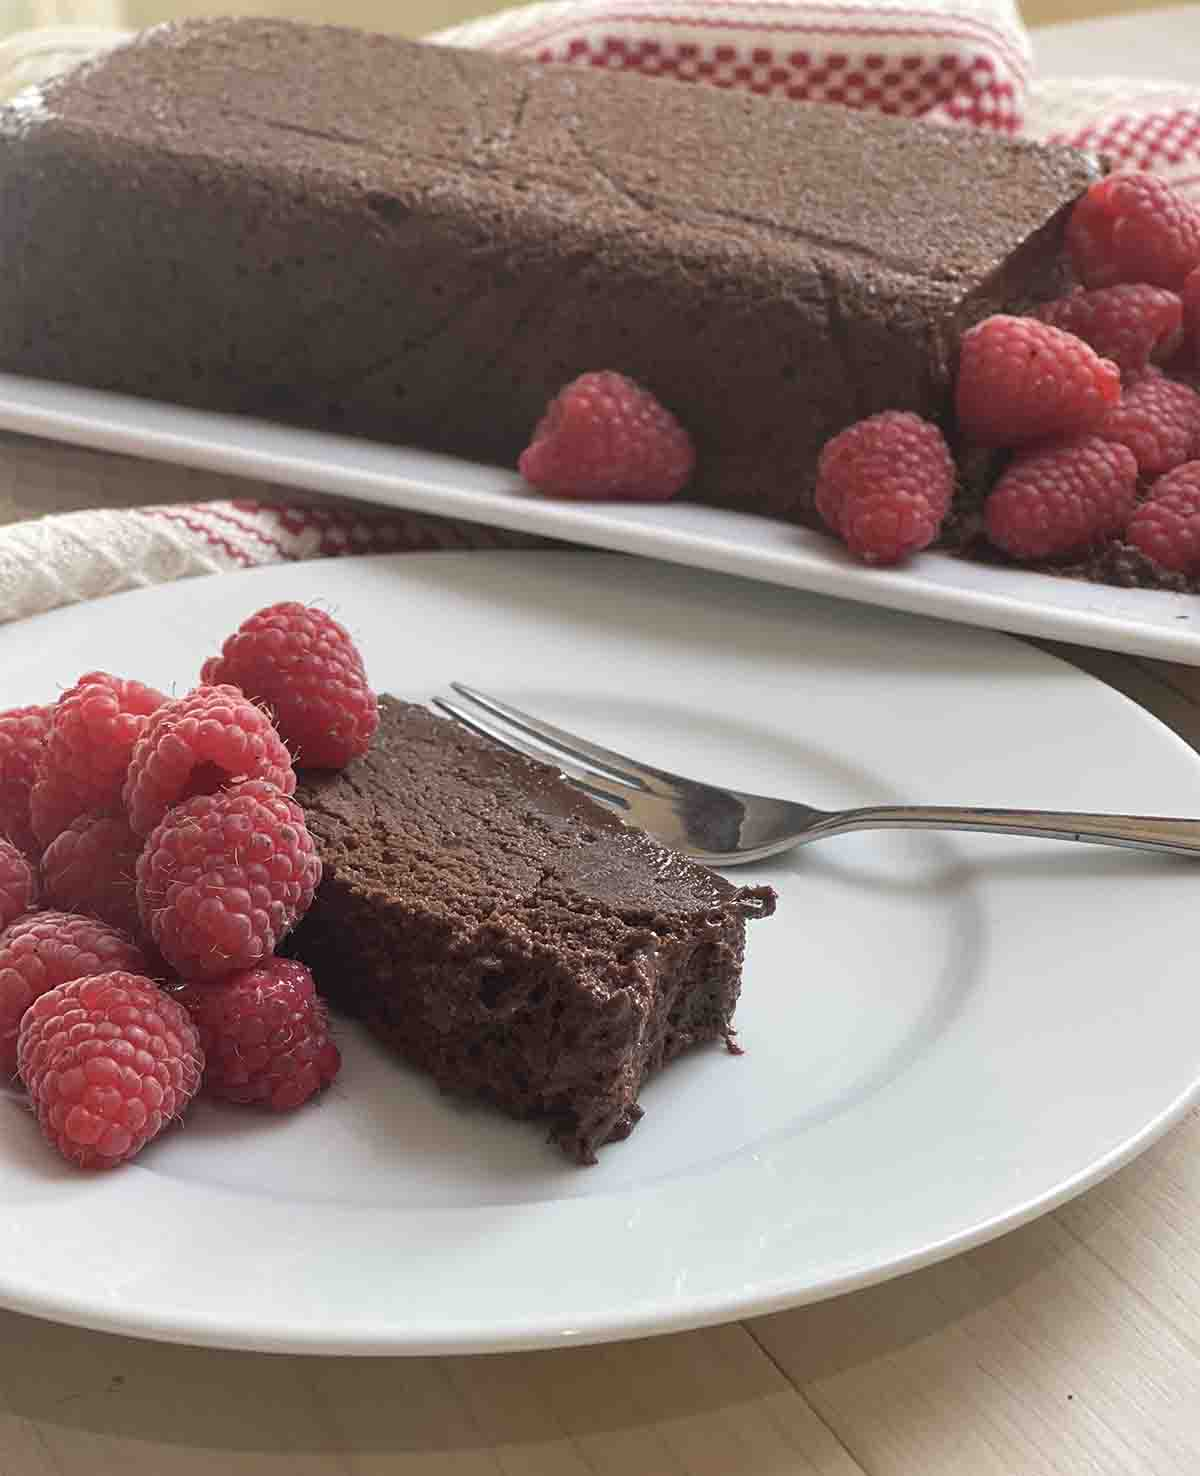 slice of chocolate marquise on a plate with raspberries and the rest of the dessert in the background.